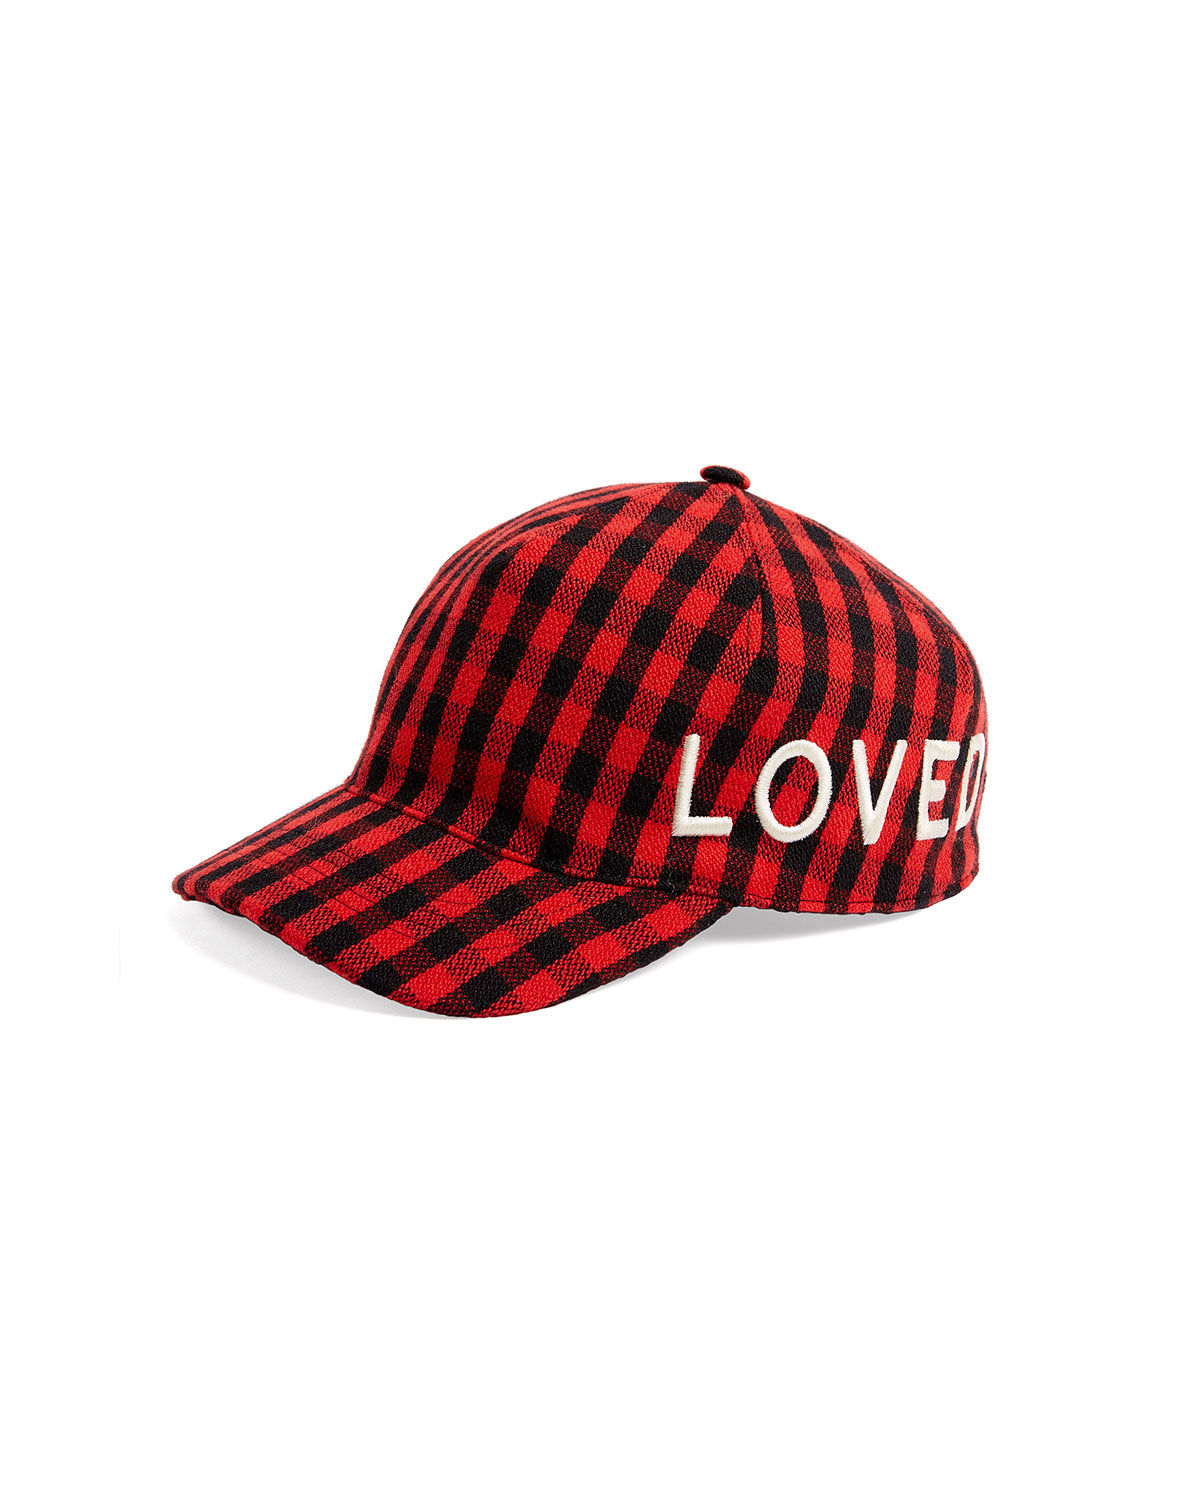 Gucci Loved Check Flannel Baseball Hat 7735650df22